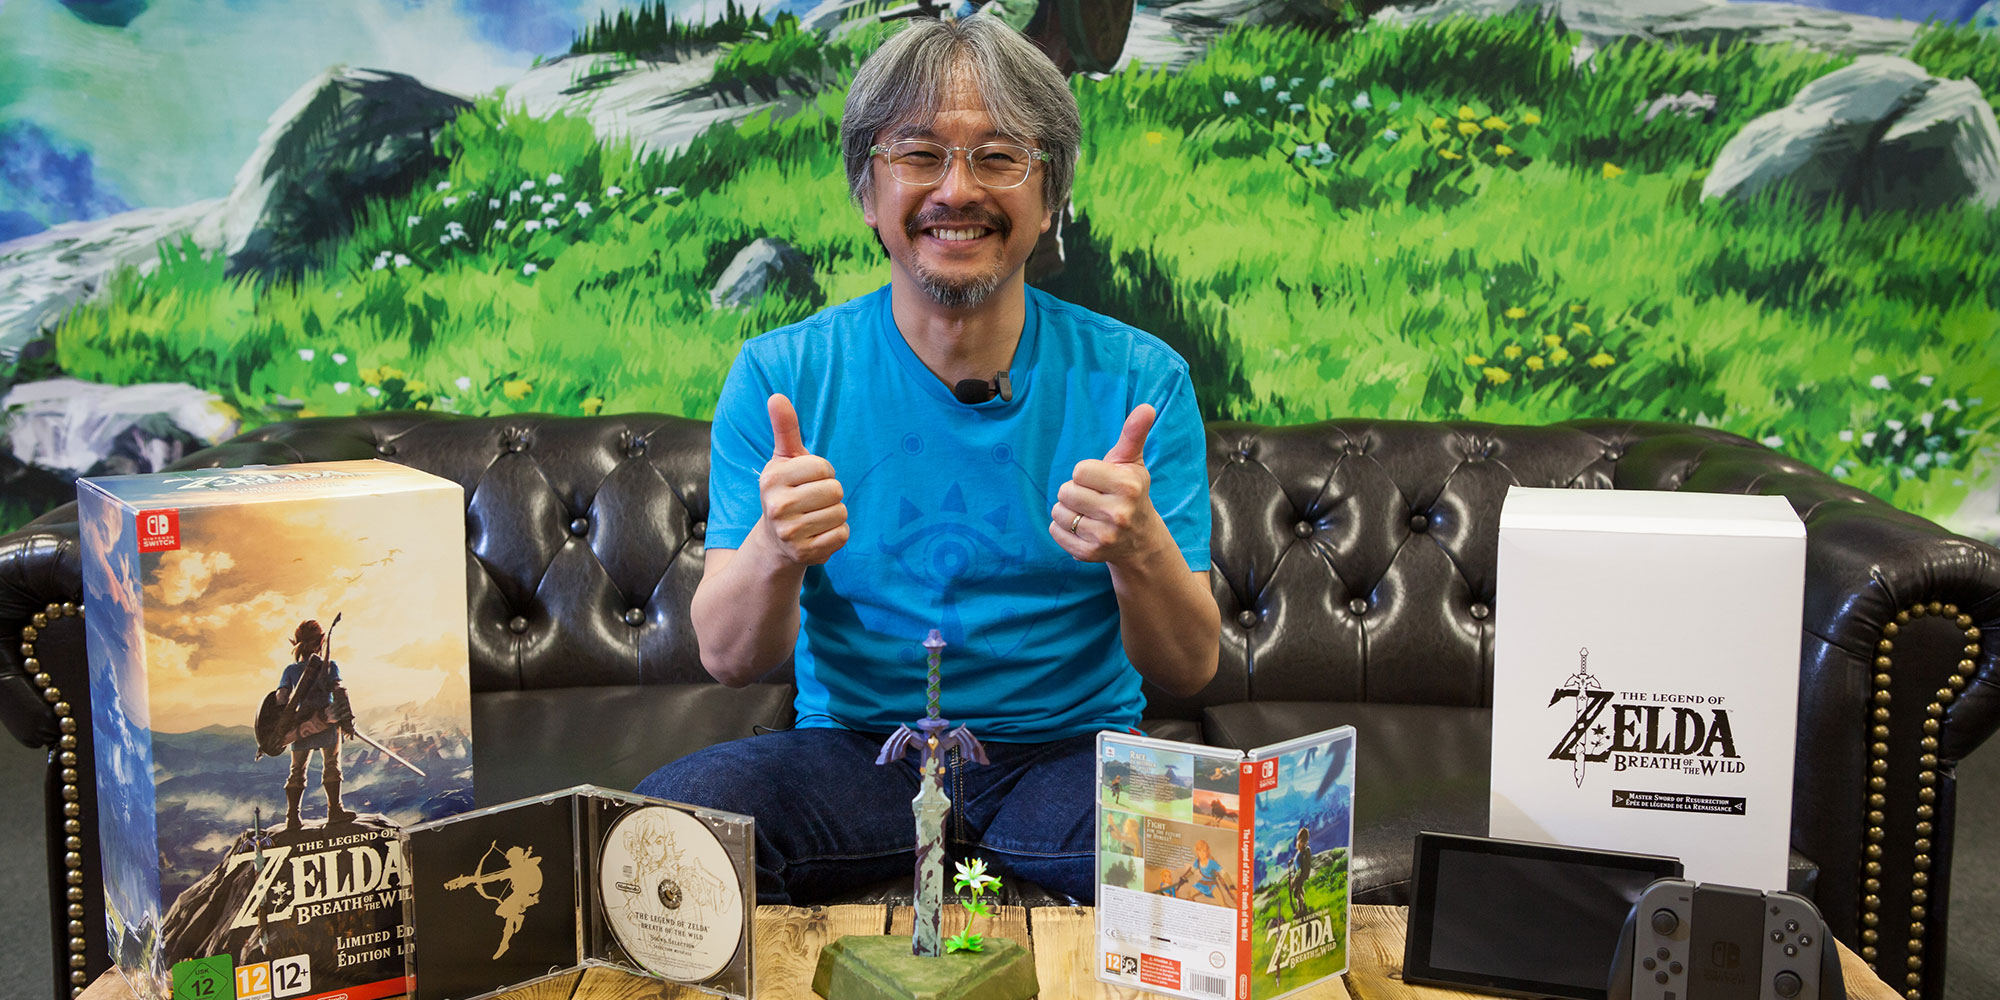 Eiji Aonuma presents The Legend of Zelda: Breath of the Wild Limited Edition